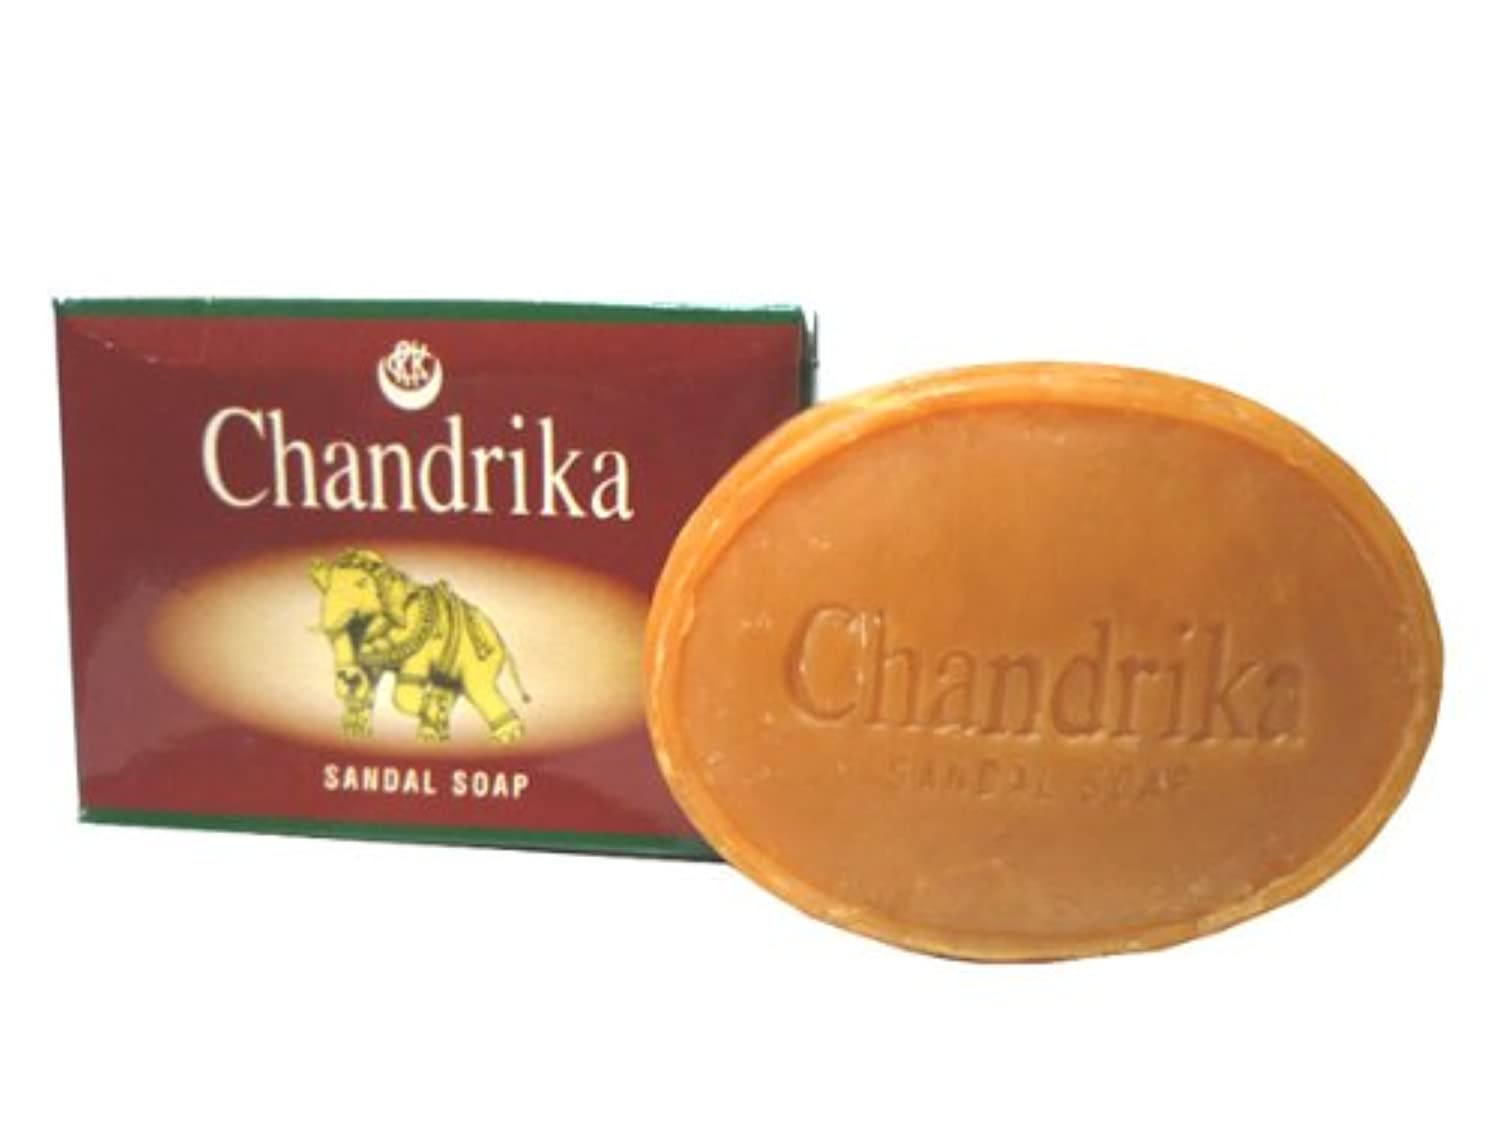 郵便物真面目な毛細血管Chandrika Chandrika Sandal Bar Soap 75 gm by Chandrika